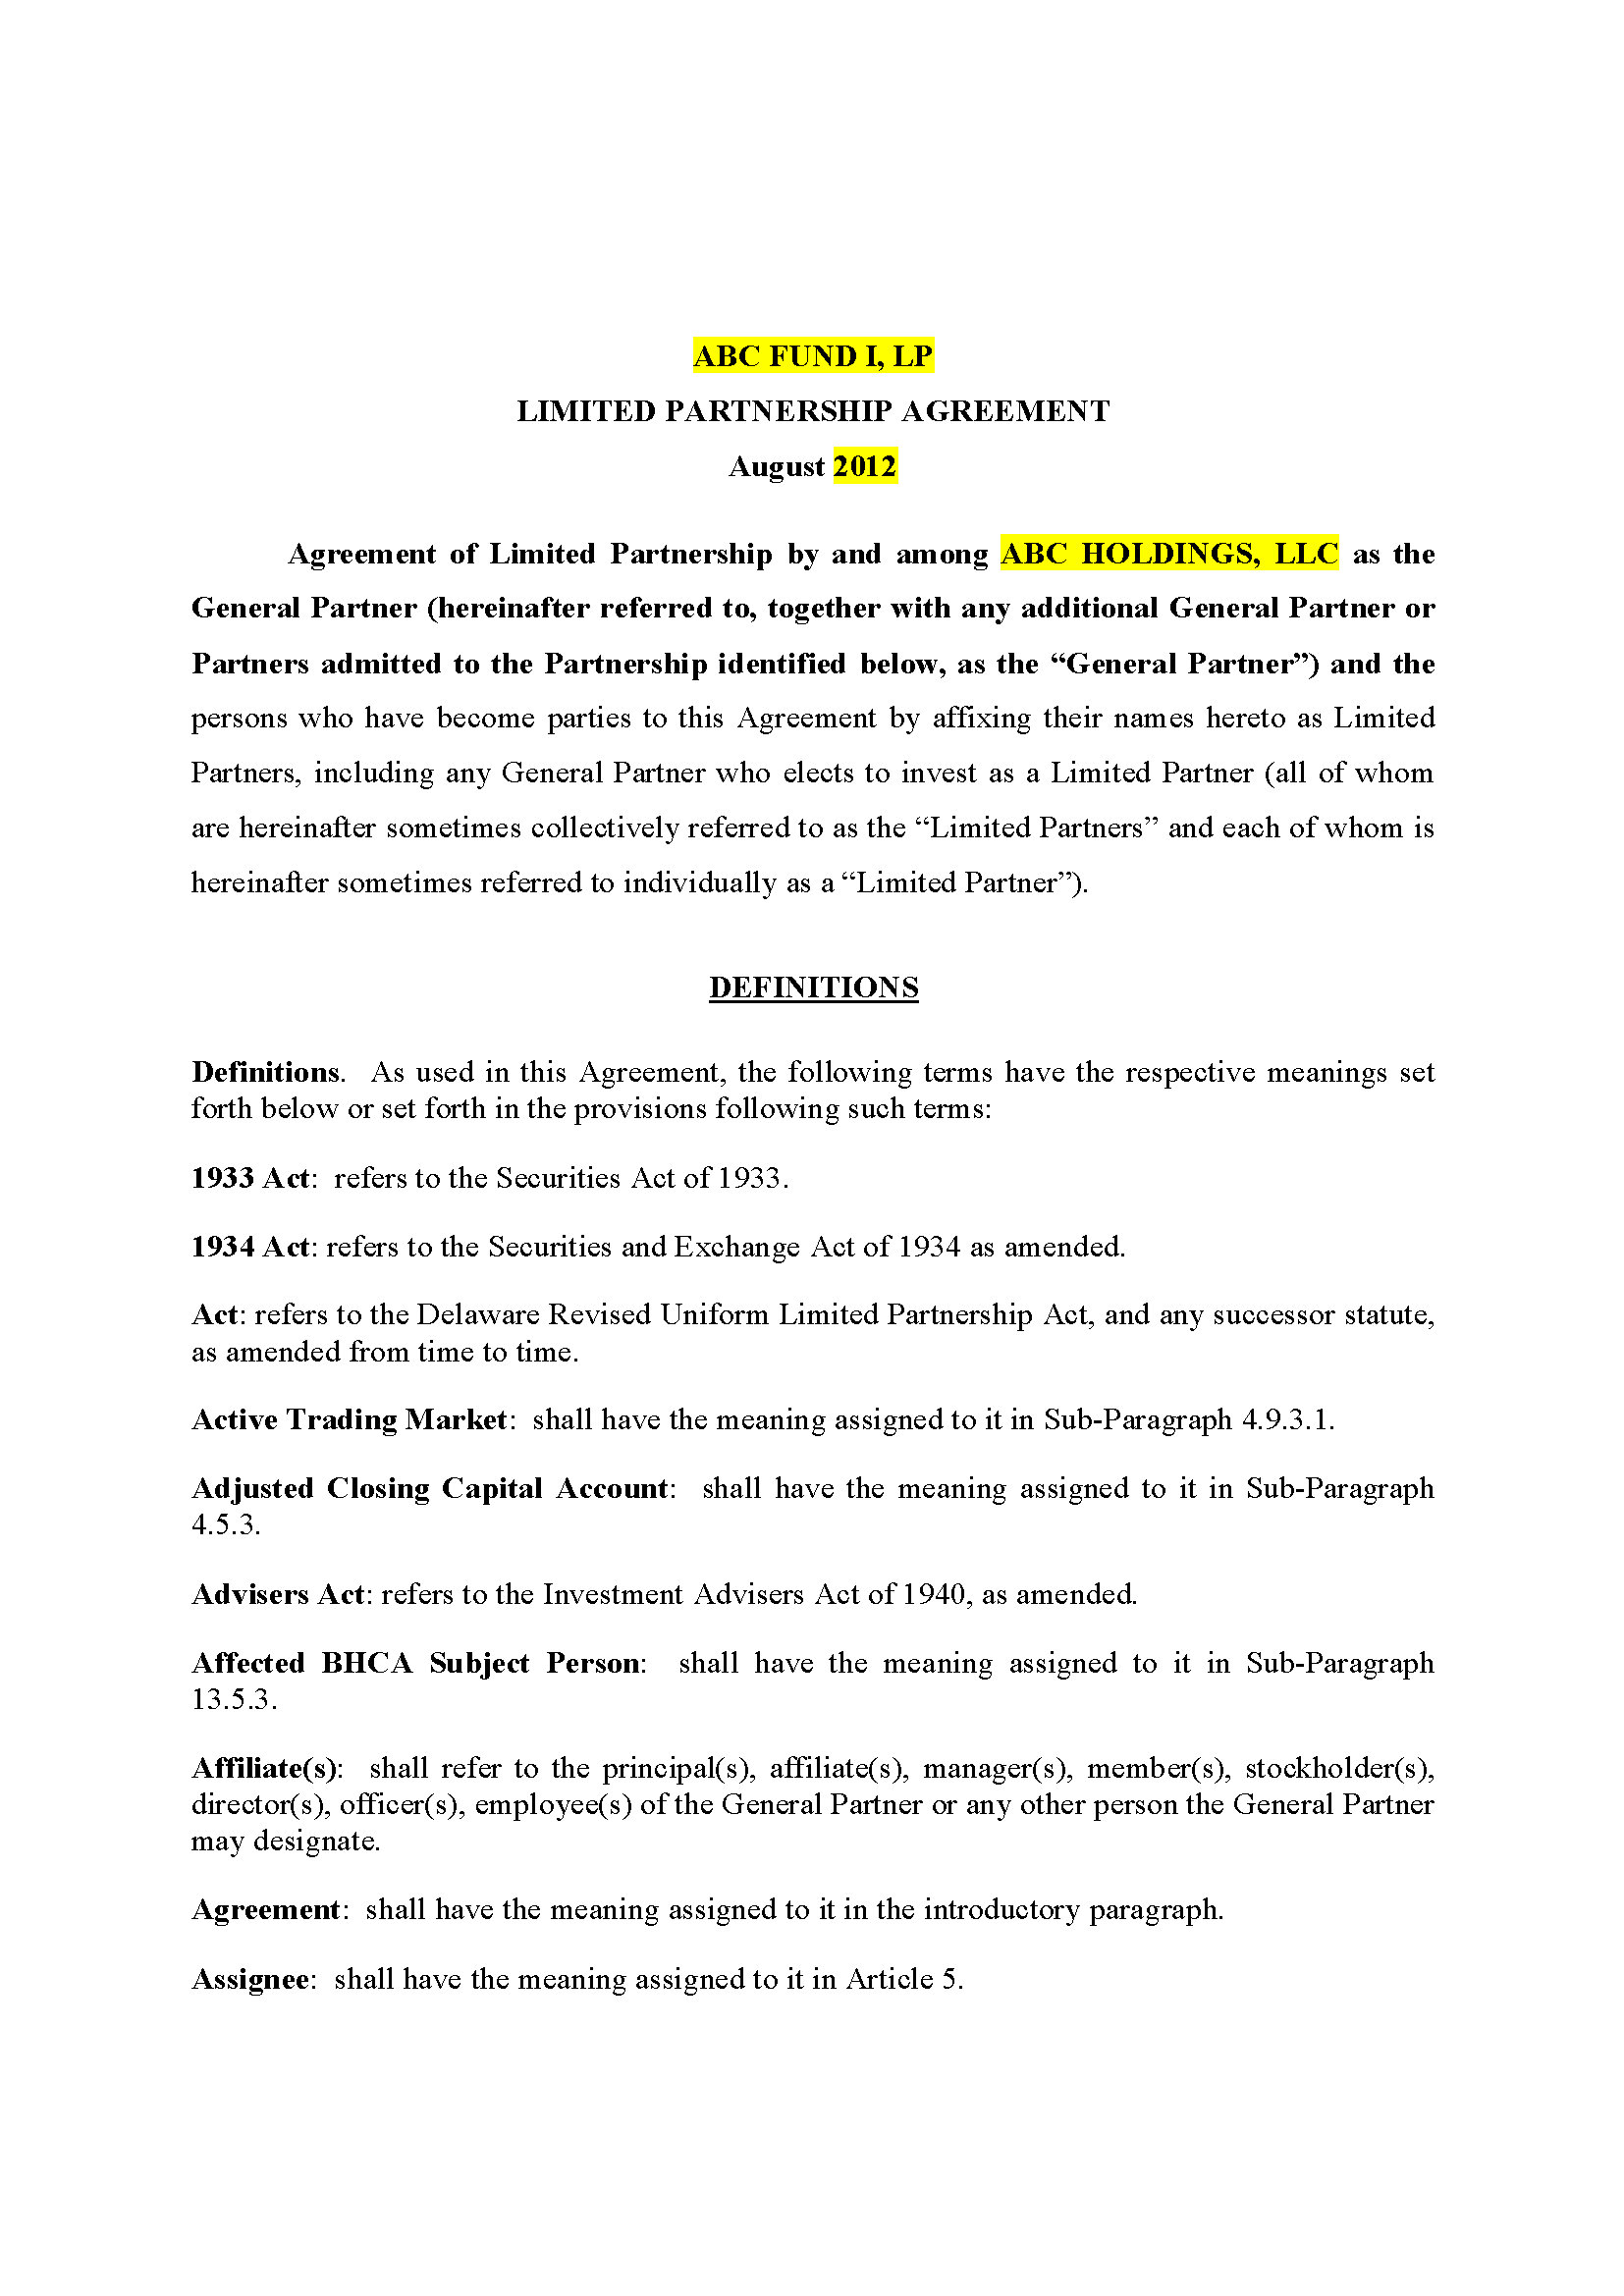 EB 5 Limted Partnership Agreement, California (35 pg)Private